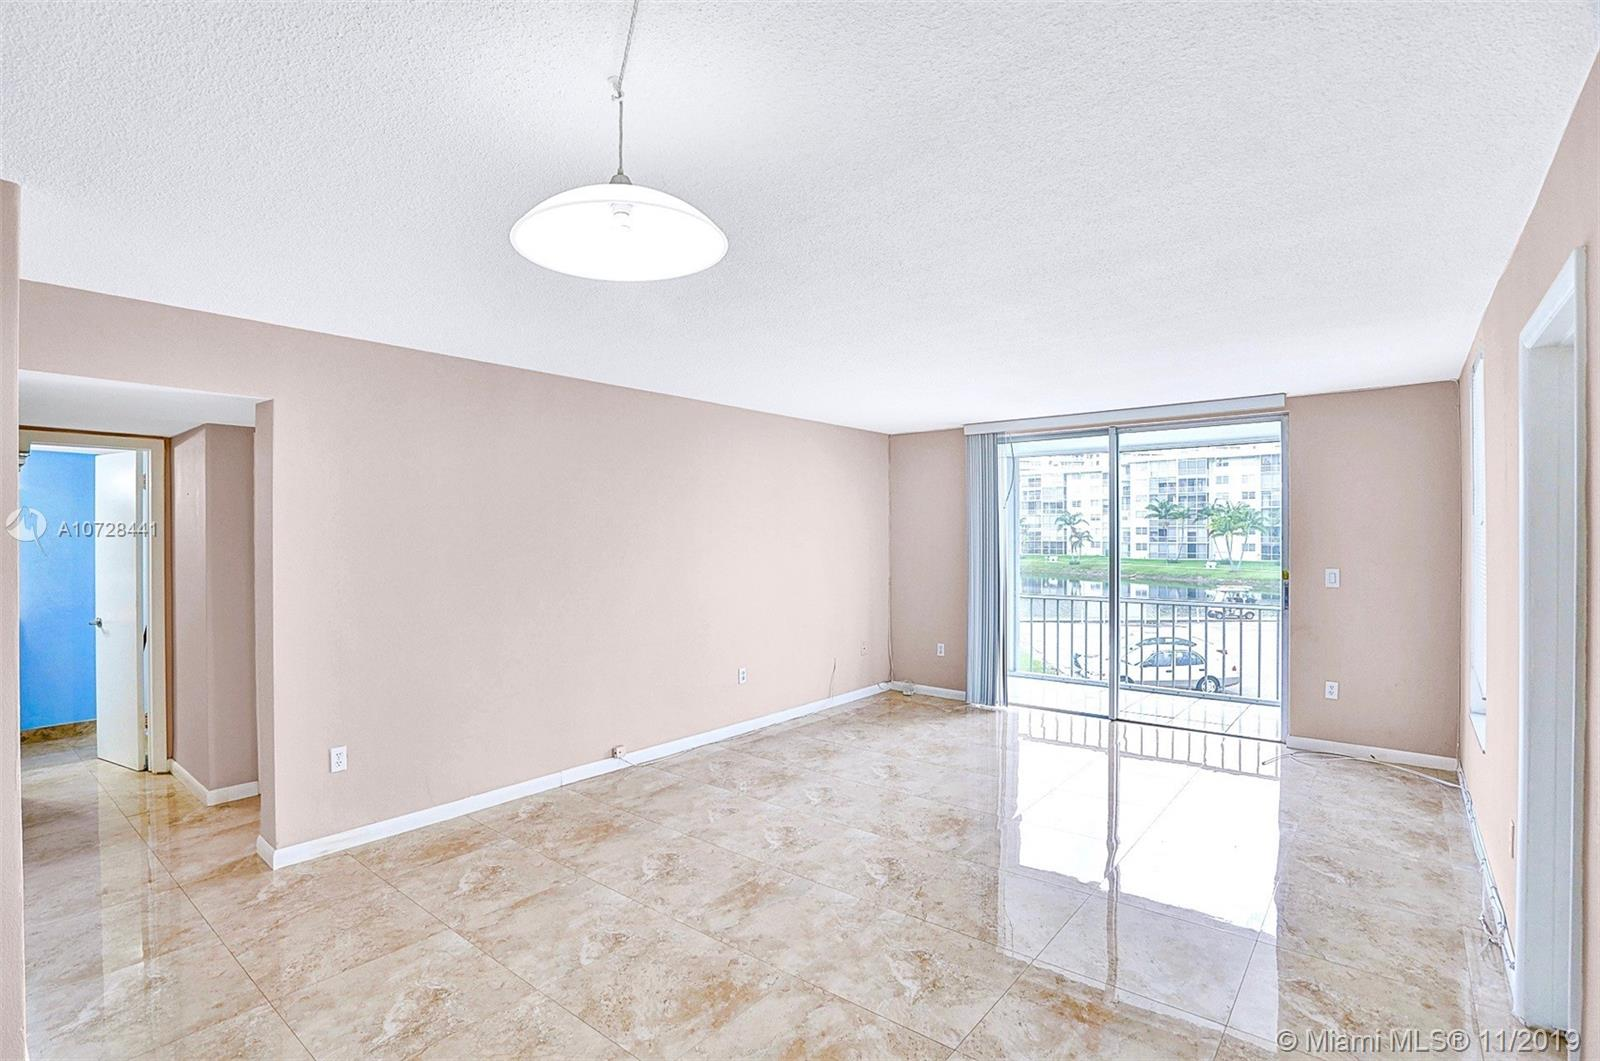 2903  Point East Dr #K214 For Sale A10728441, FL